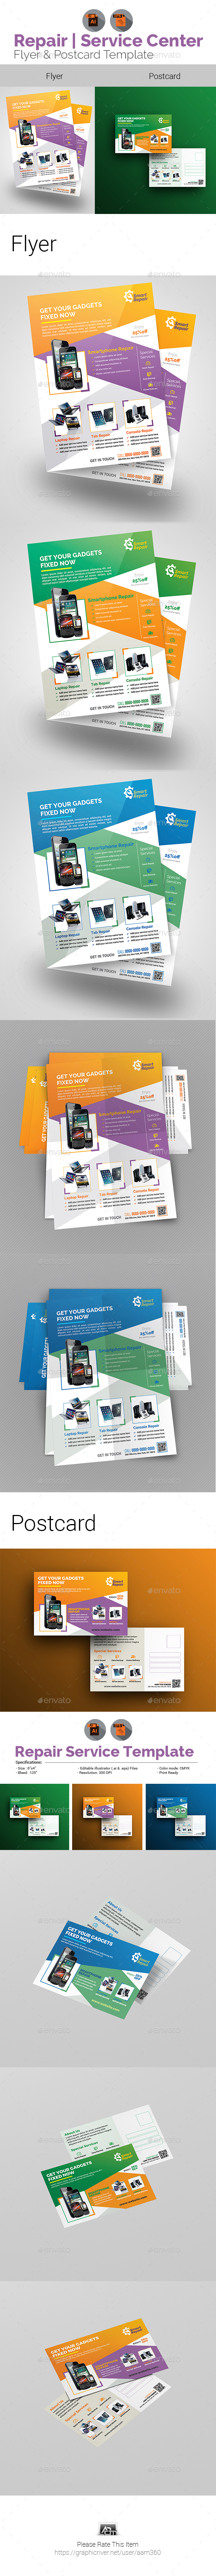 Tech Repair Center Flyer & Postcard Bundle - Print Templates